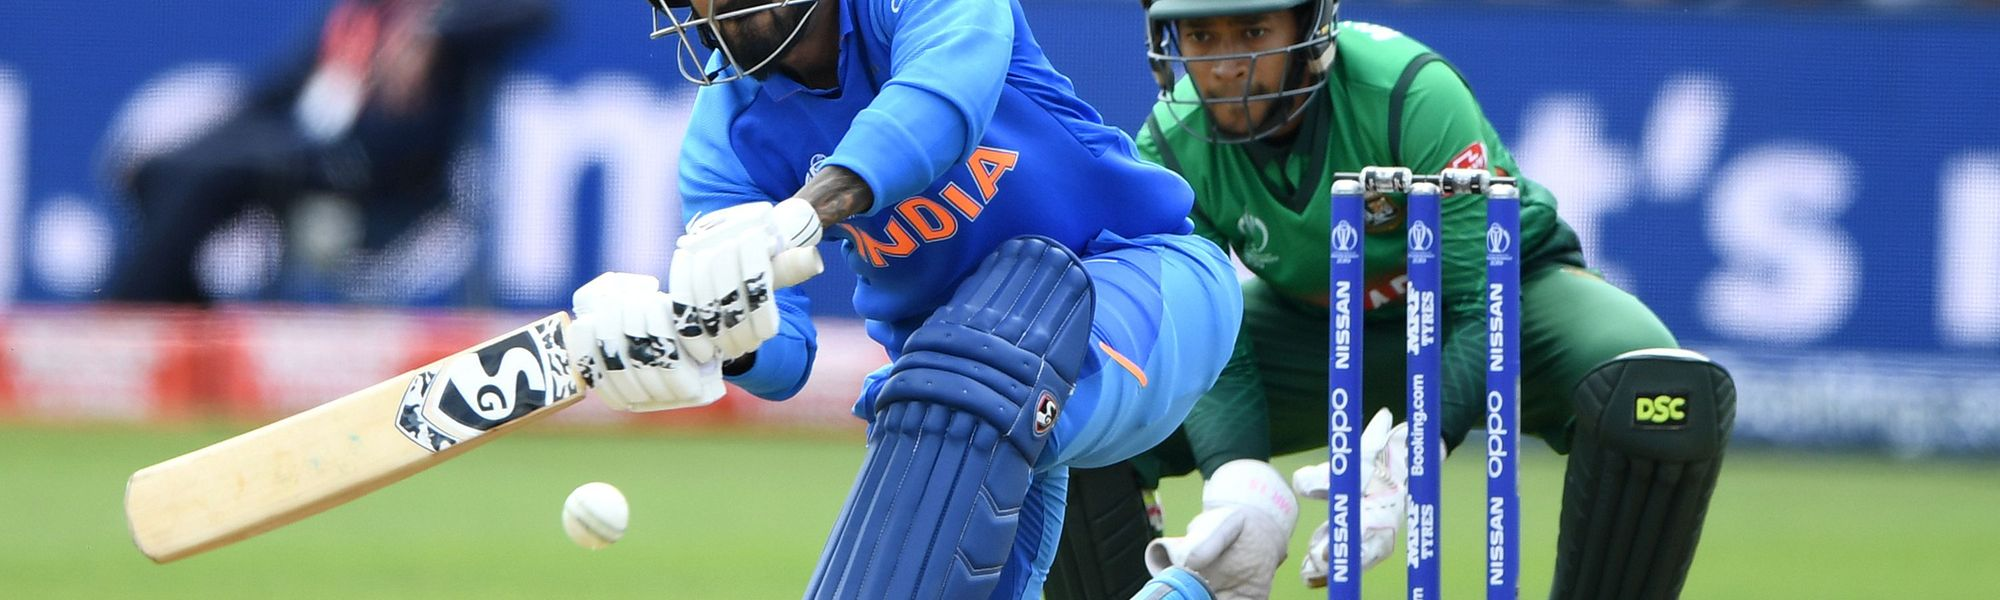 KL Rahul sweeps against Bangladesh